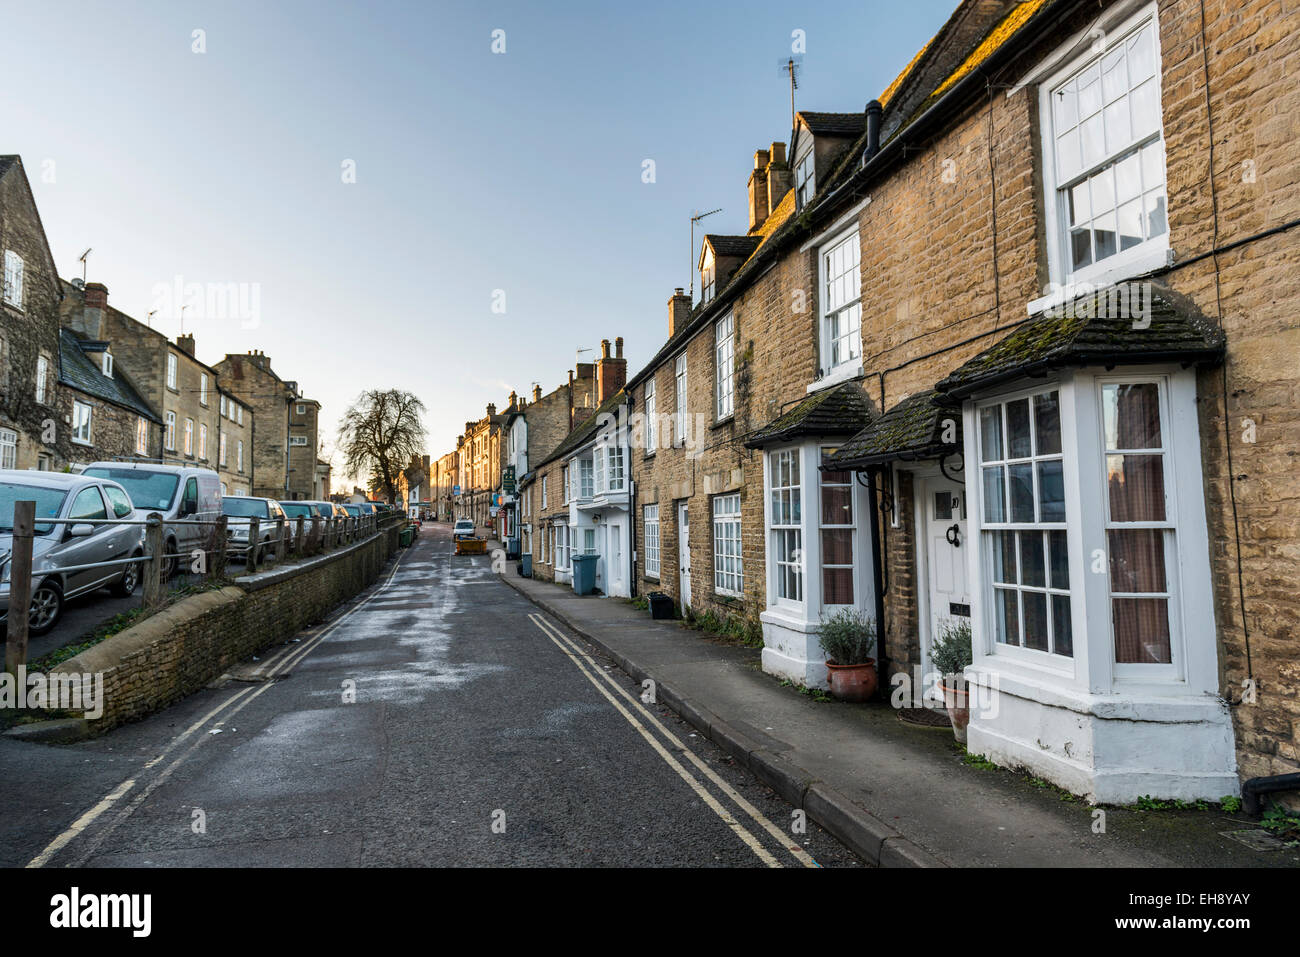 The narrow streets and terraced houses of Chipping Norton, an historic market town in the Cotswolds, Oxfordshire - Stock Image